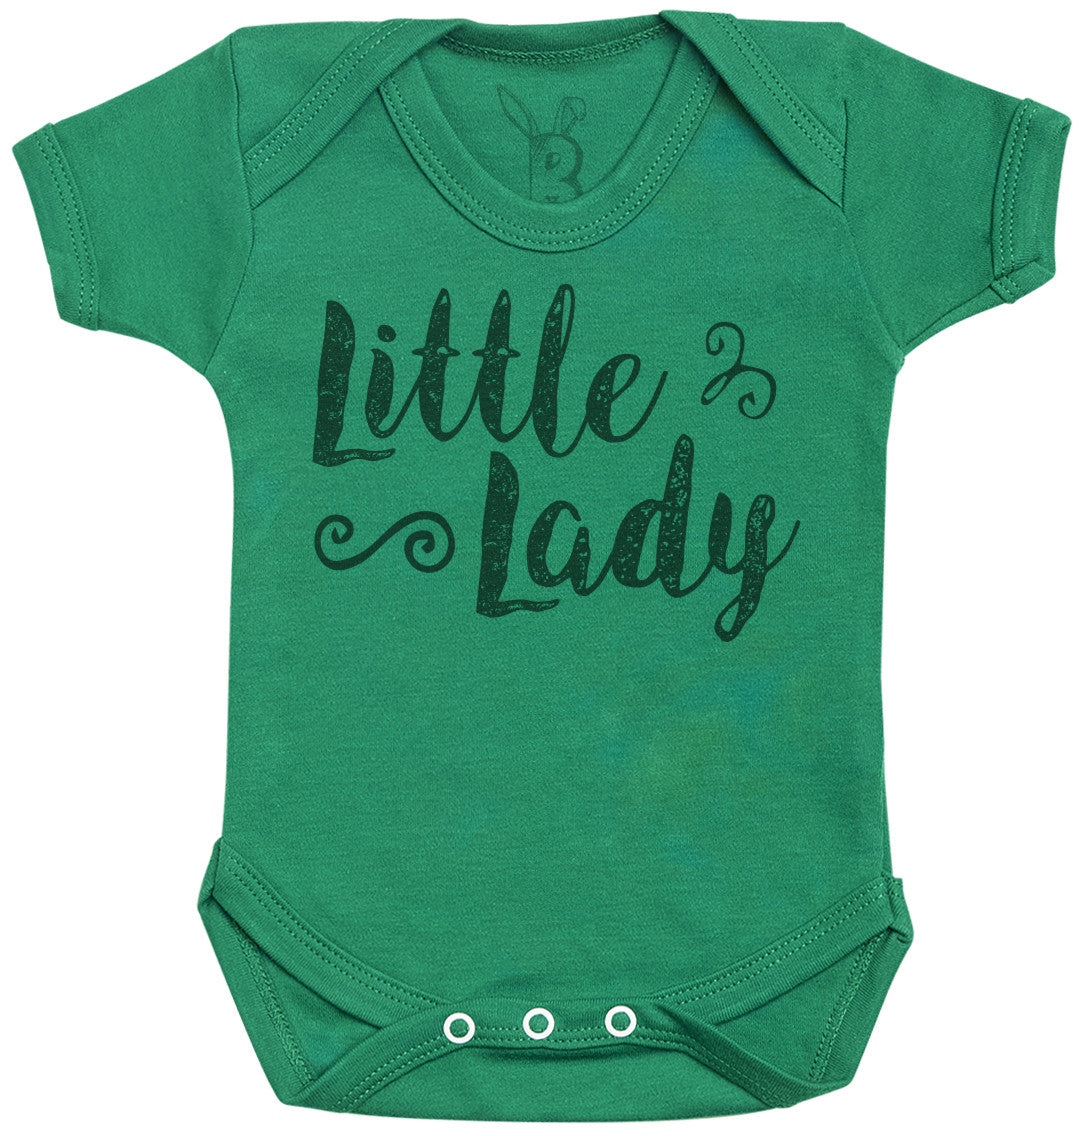 Little Lady Baby Bodysuit - Baby Gift